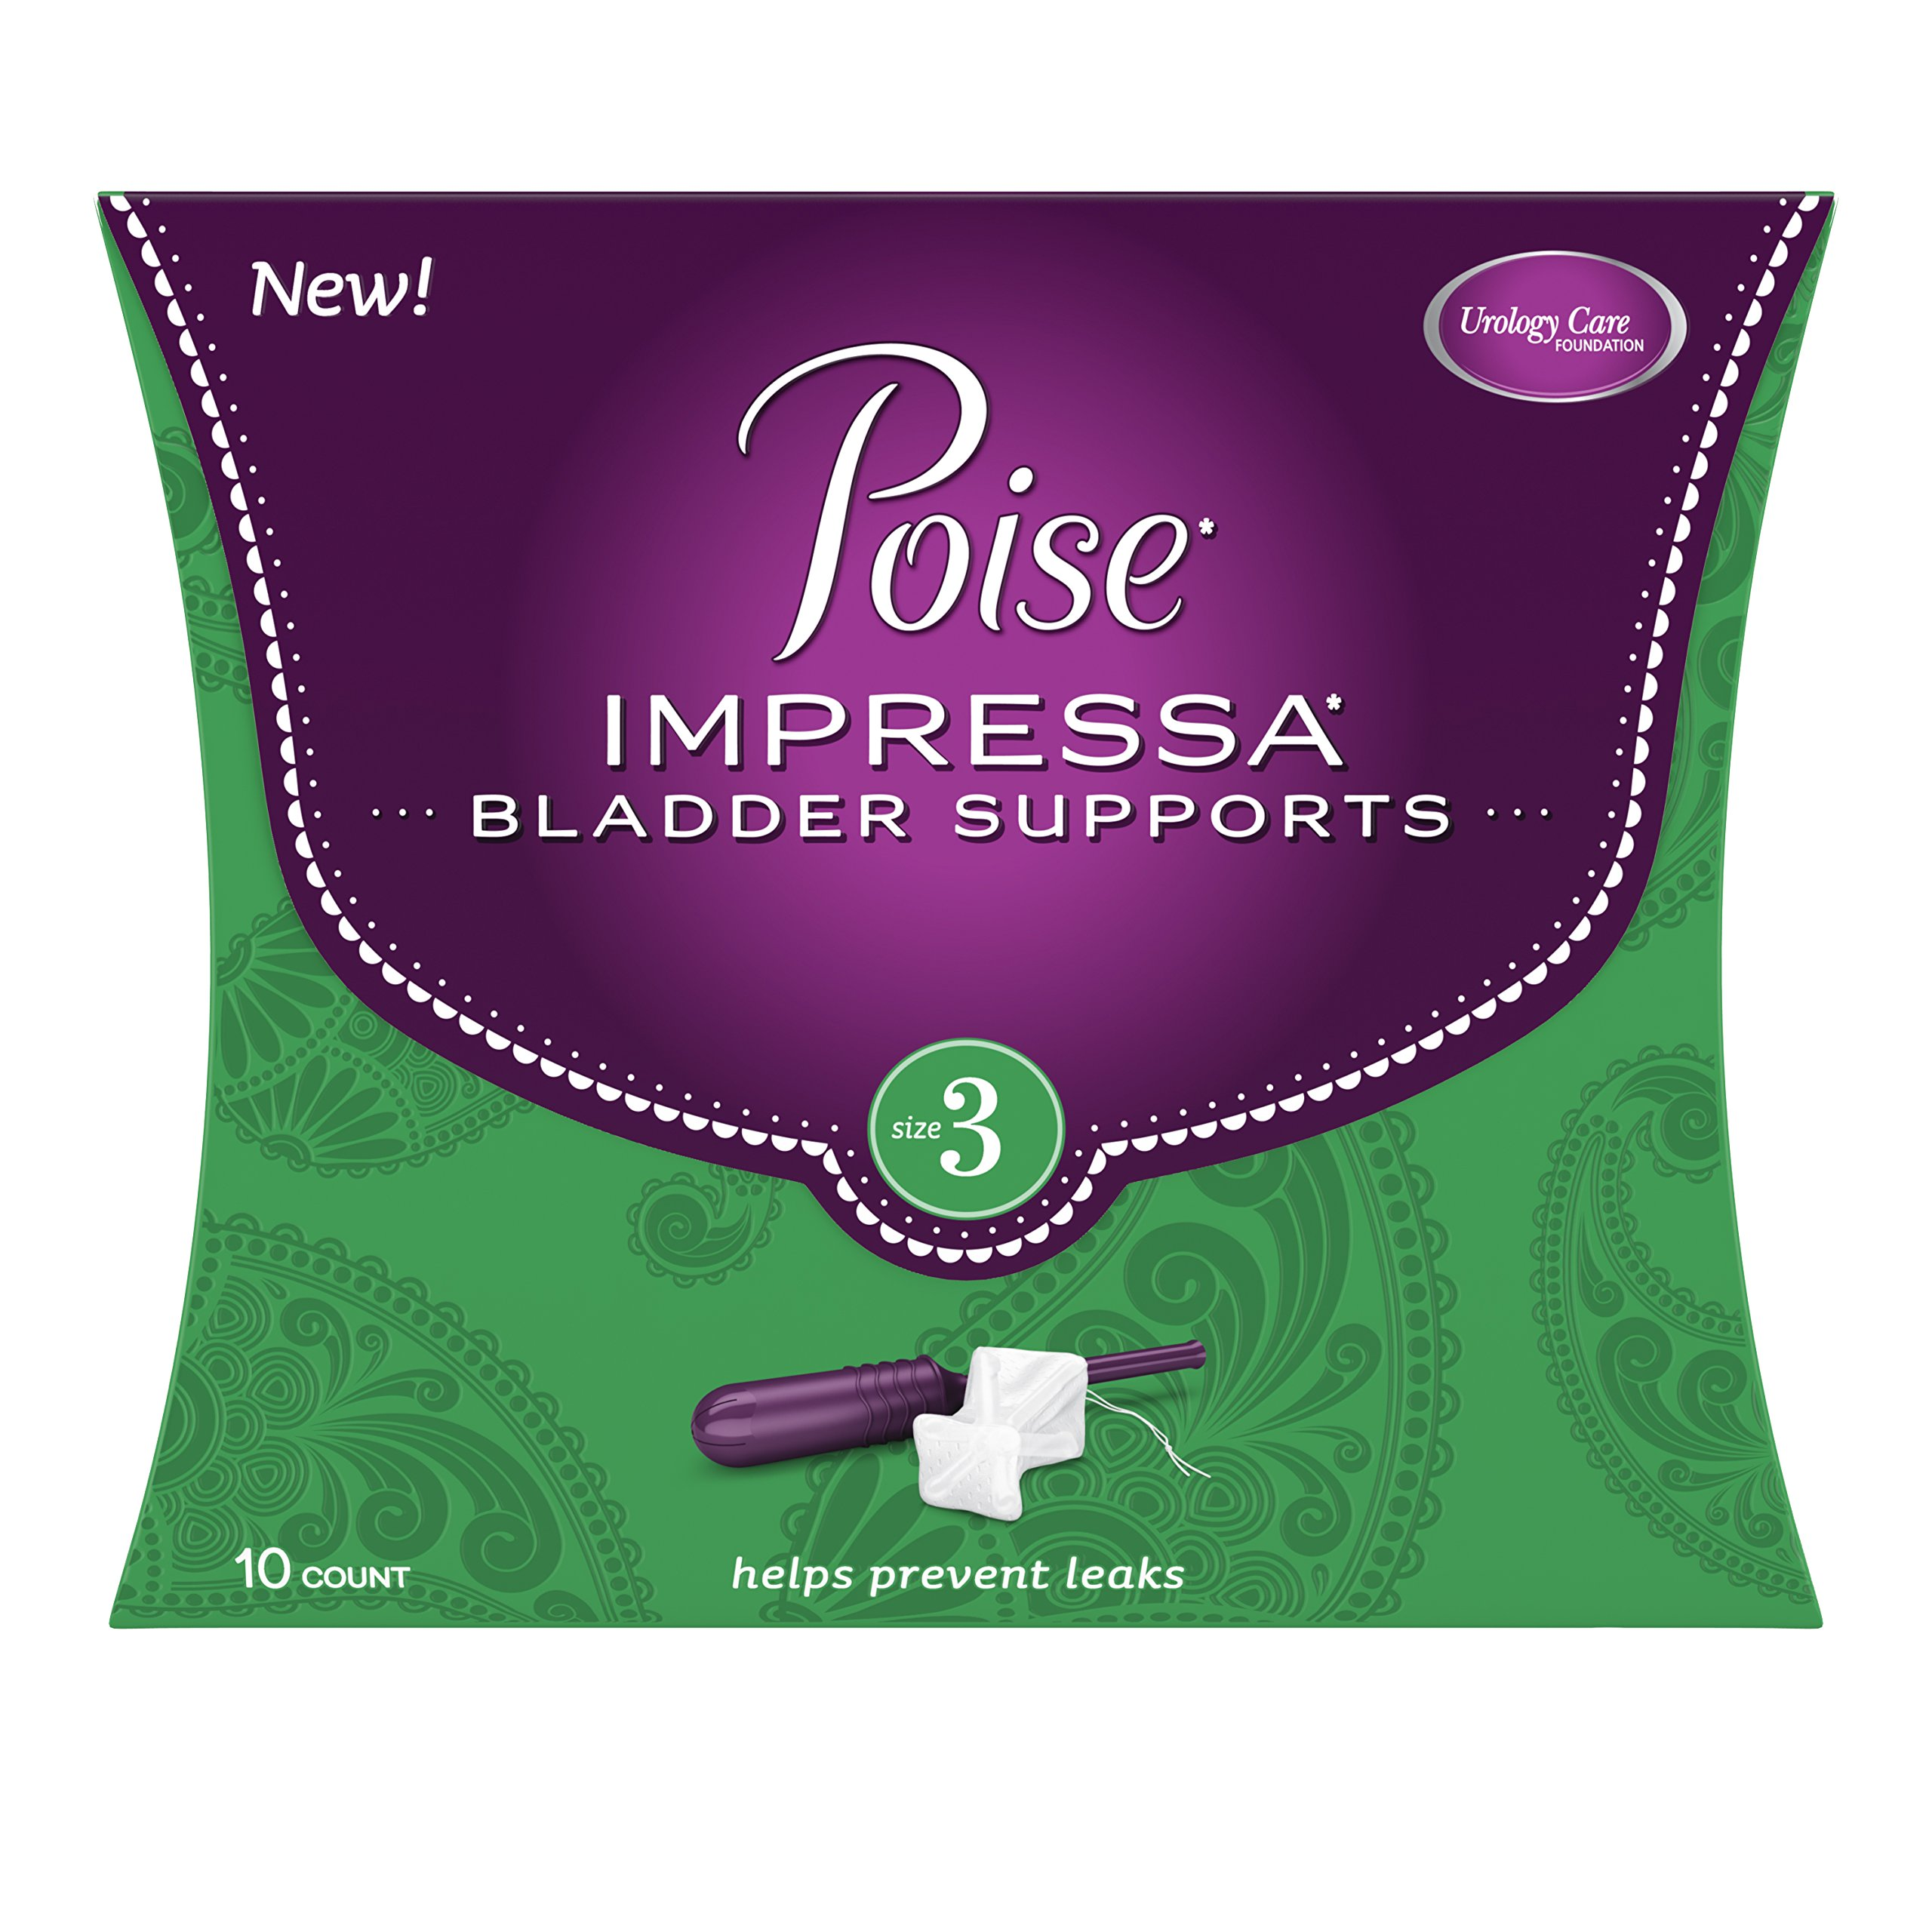 Poise Impressa Incontinence Bladder Supports Size 3, 10 Count